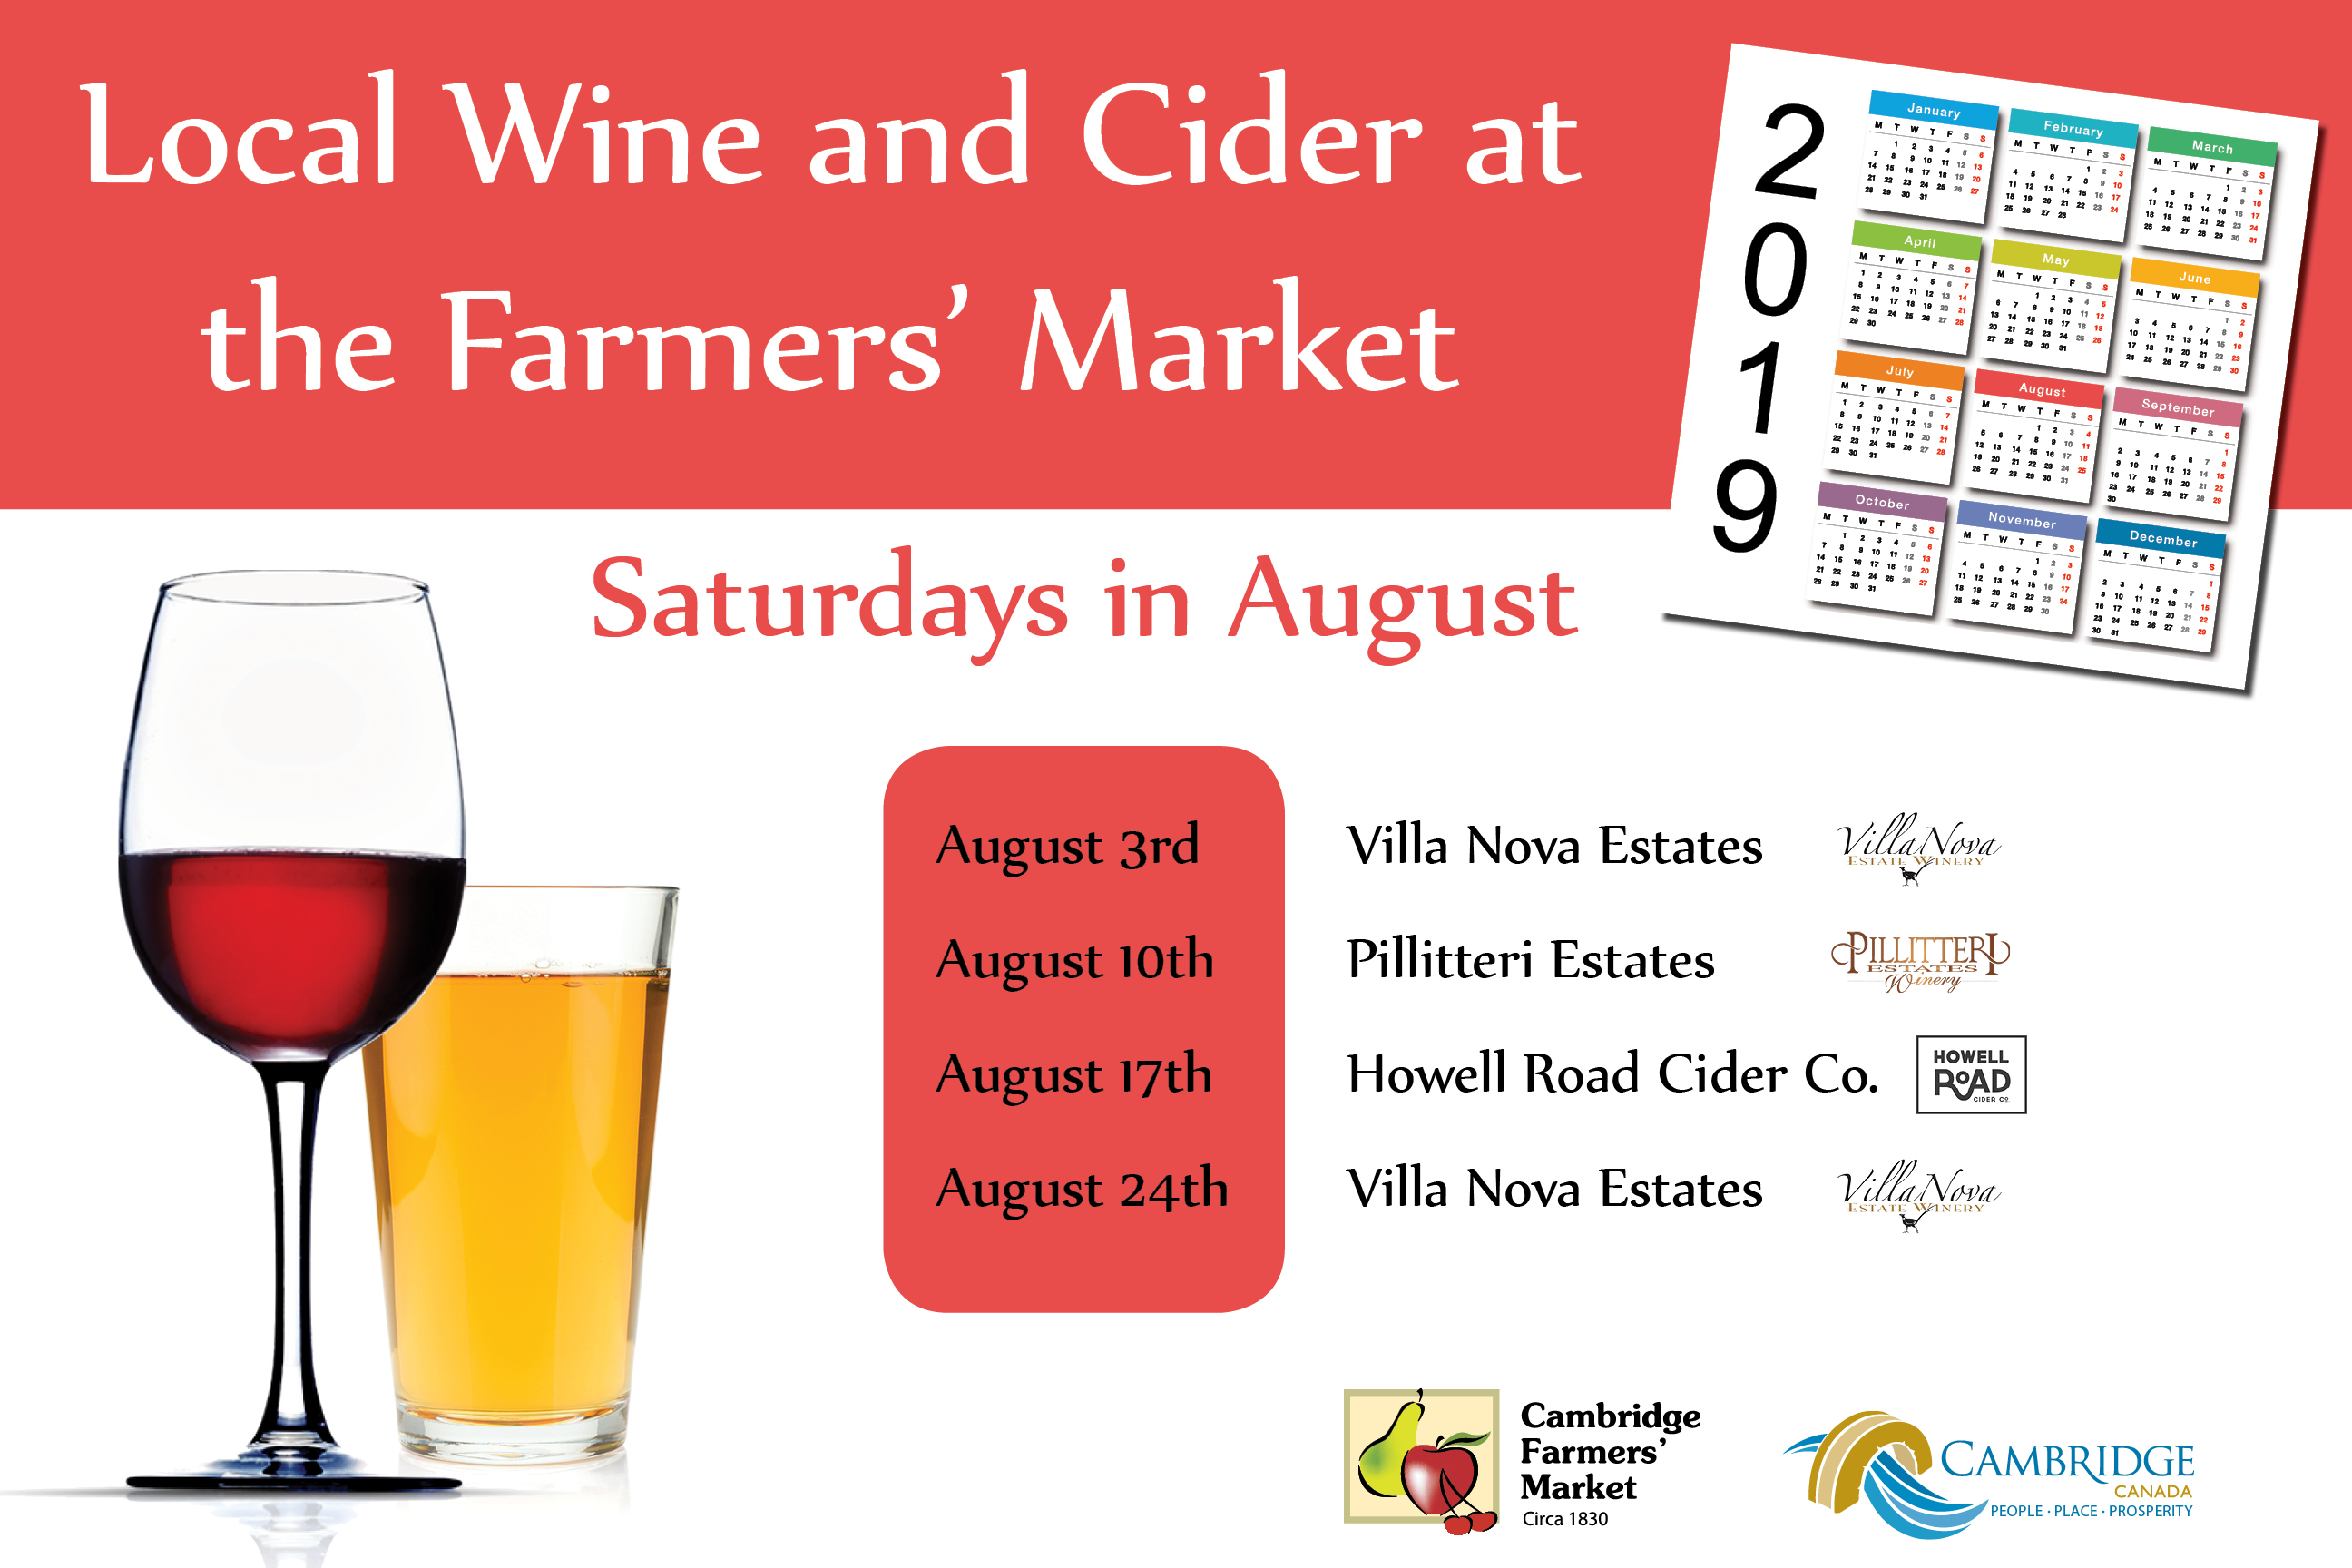 Wine and Cider Vendors August 2019